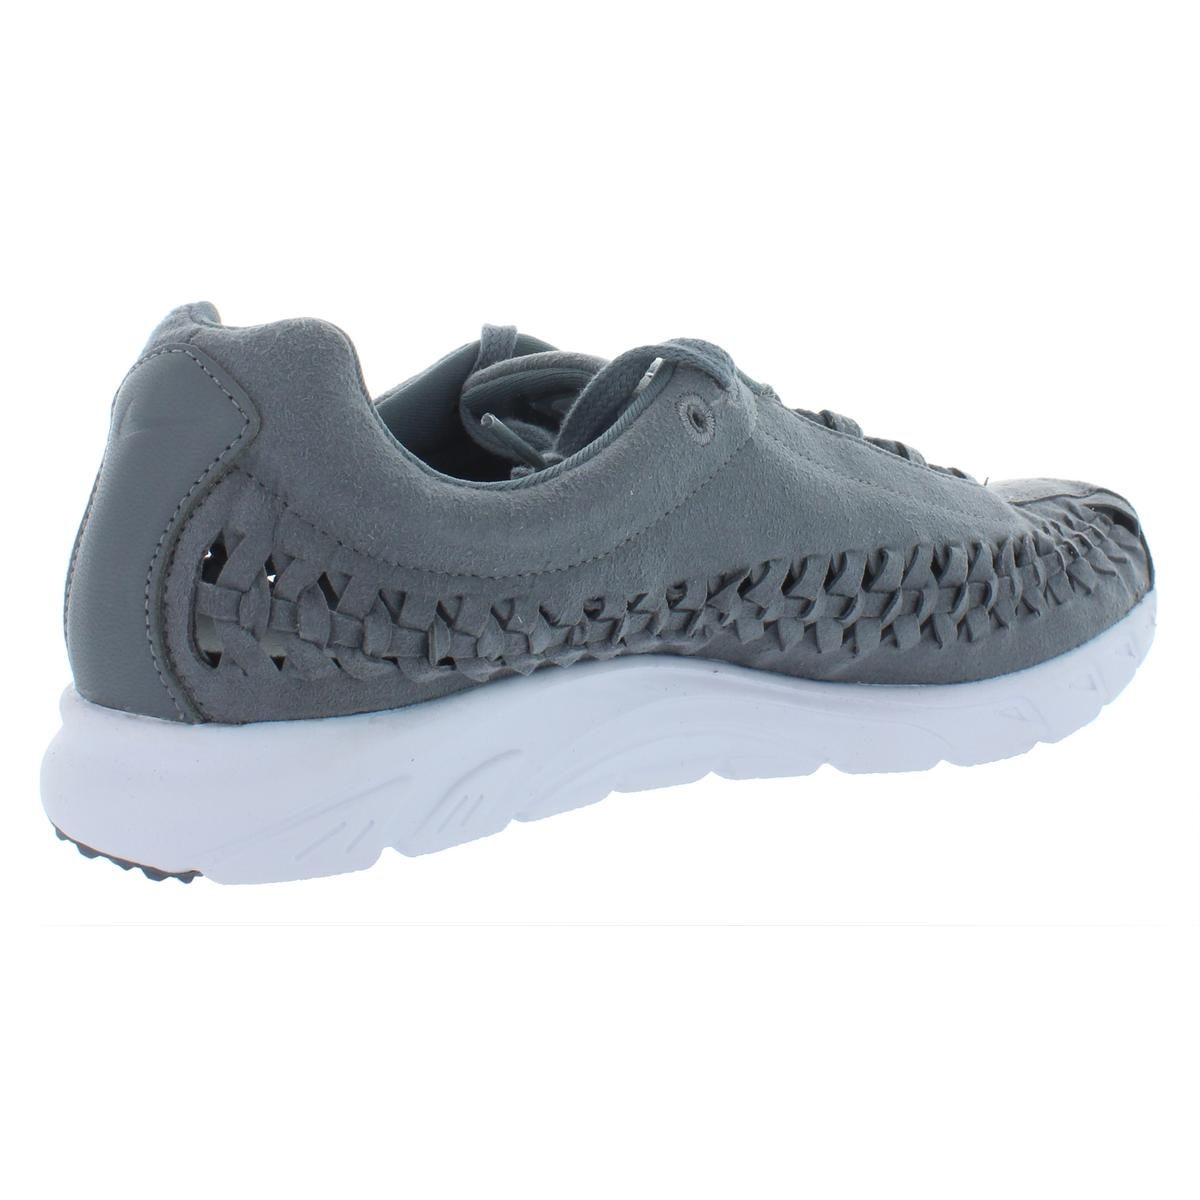 Nike-Mens-Mayfly-Woven-Suede-Woven-Training-Fashion-Sneakers-Shoes-BHFO-2898 thumbnail 12